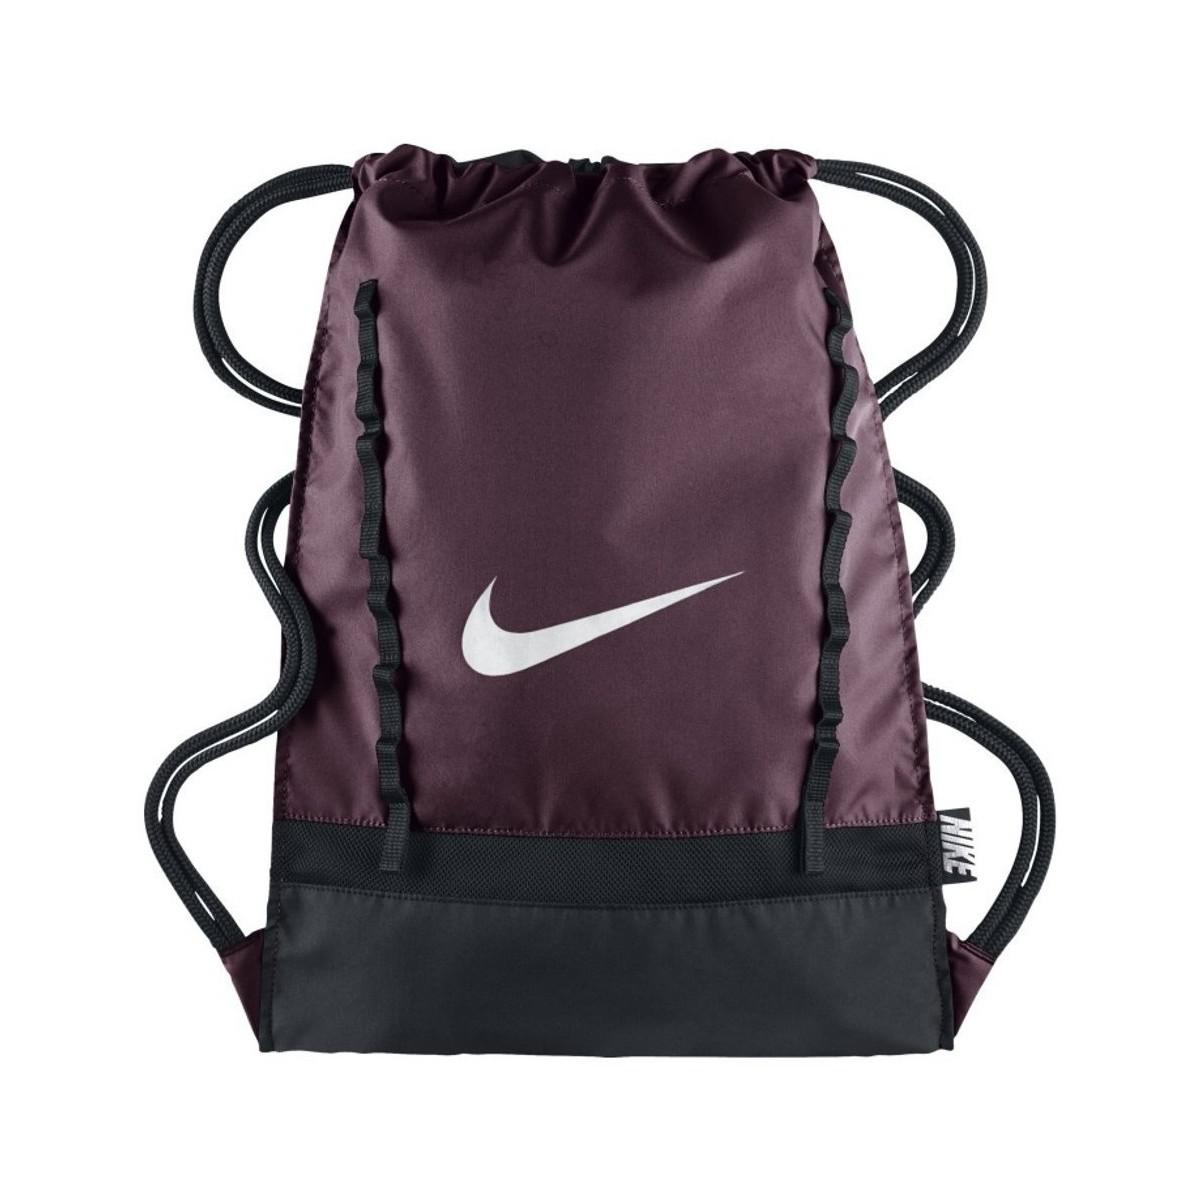 b03191ca3eb7 Lyst - Nike Brasilia 7 Gymsack Women s Backpack In Black in Black ...